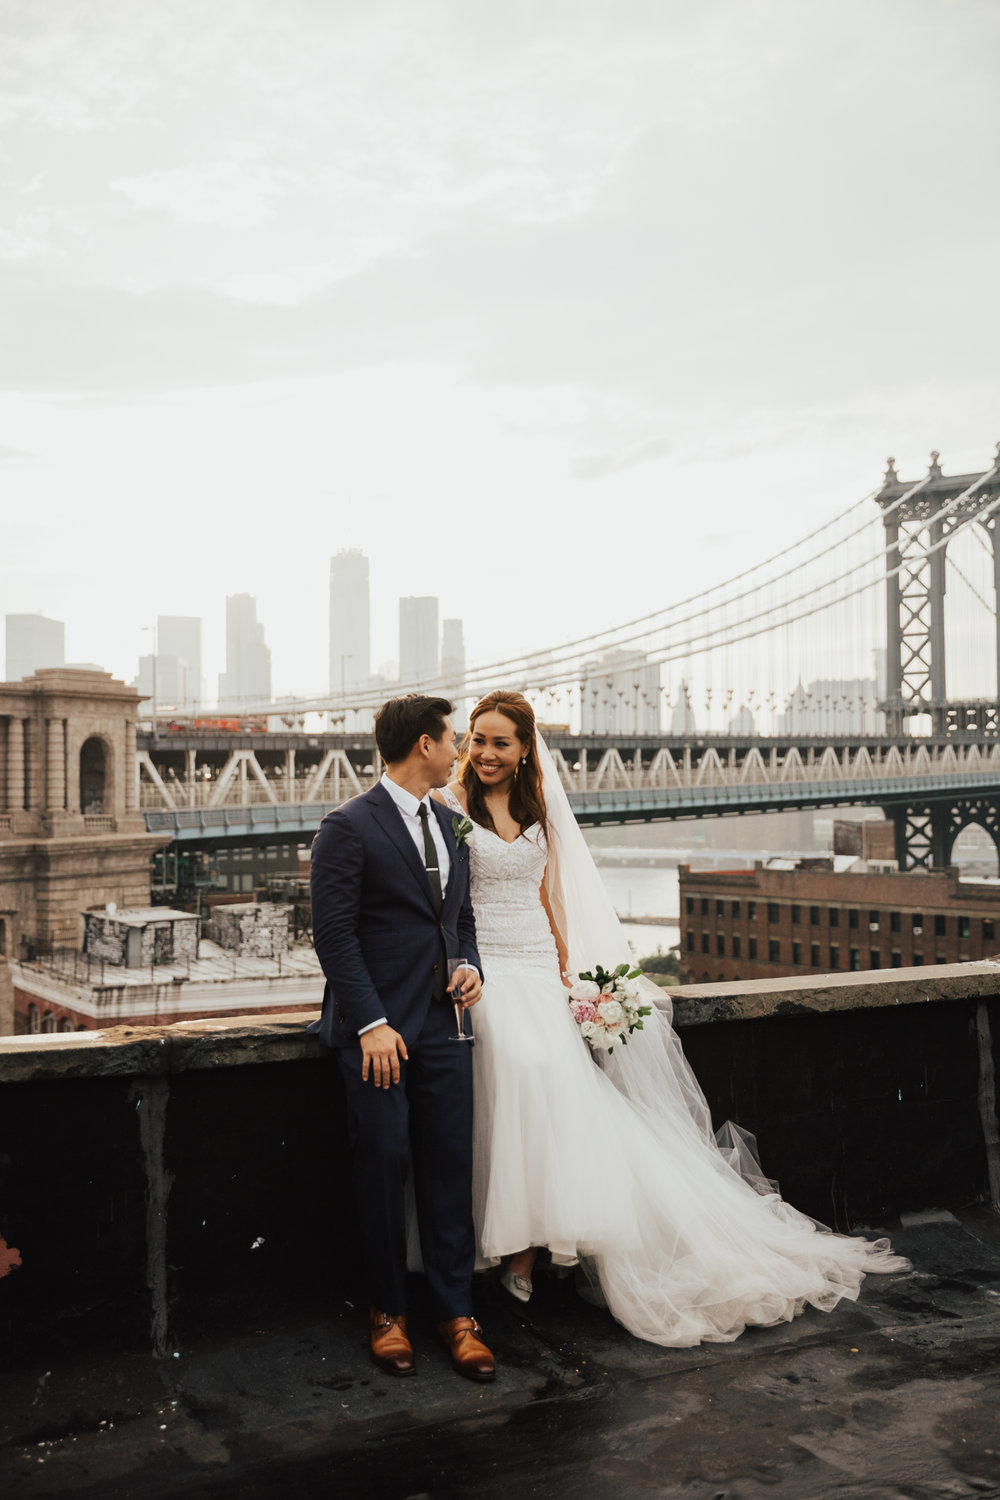 Brooklyn hipster weddings